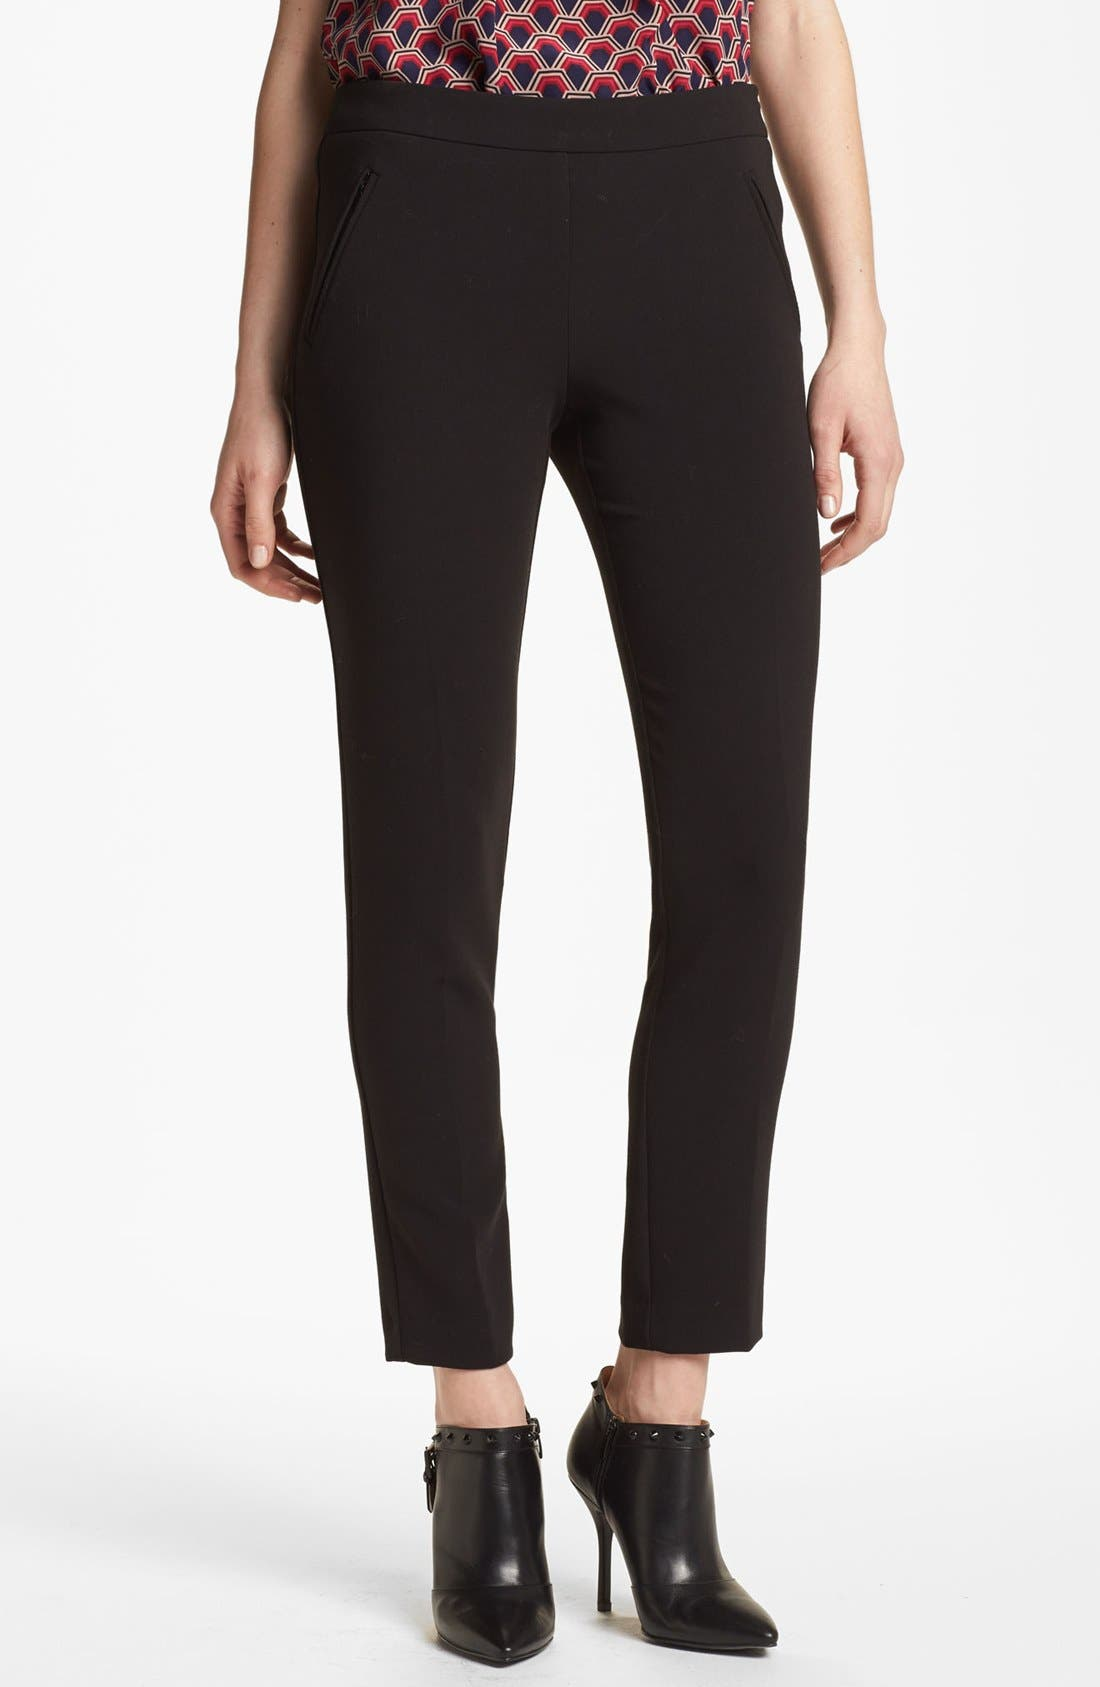 Alternate Image 1 Selected - Trina Turk 'Society' Ankle Pants